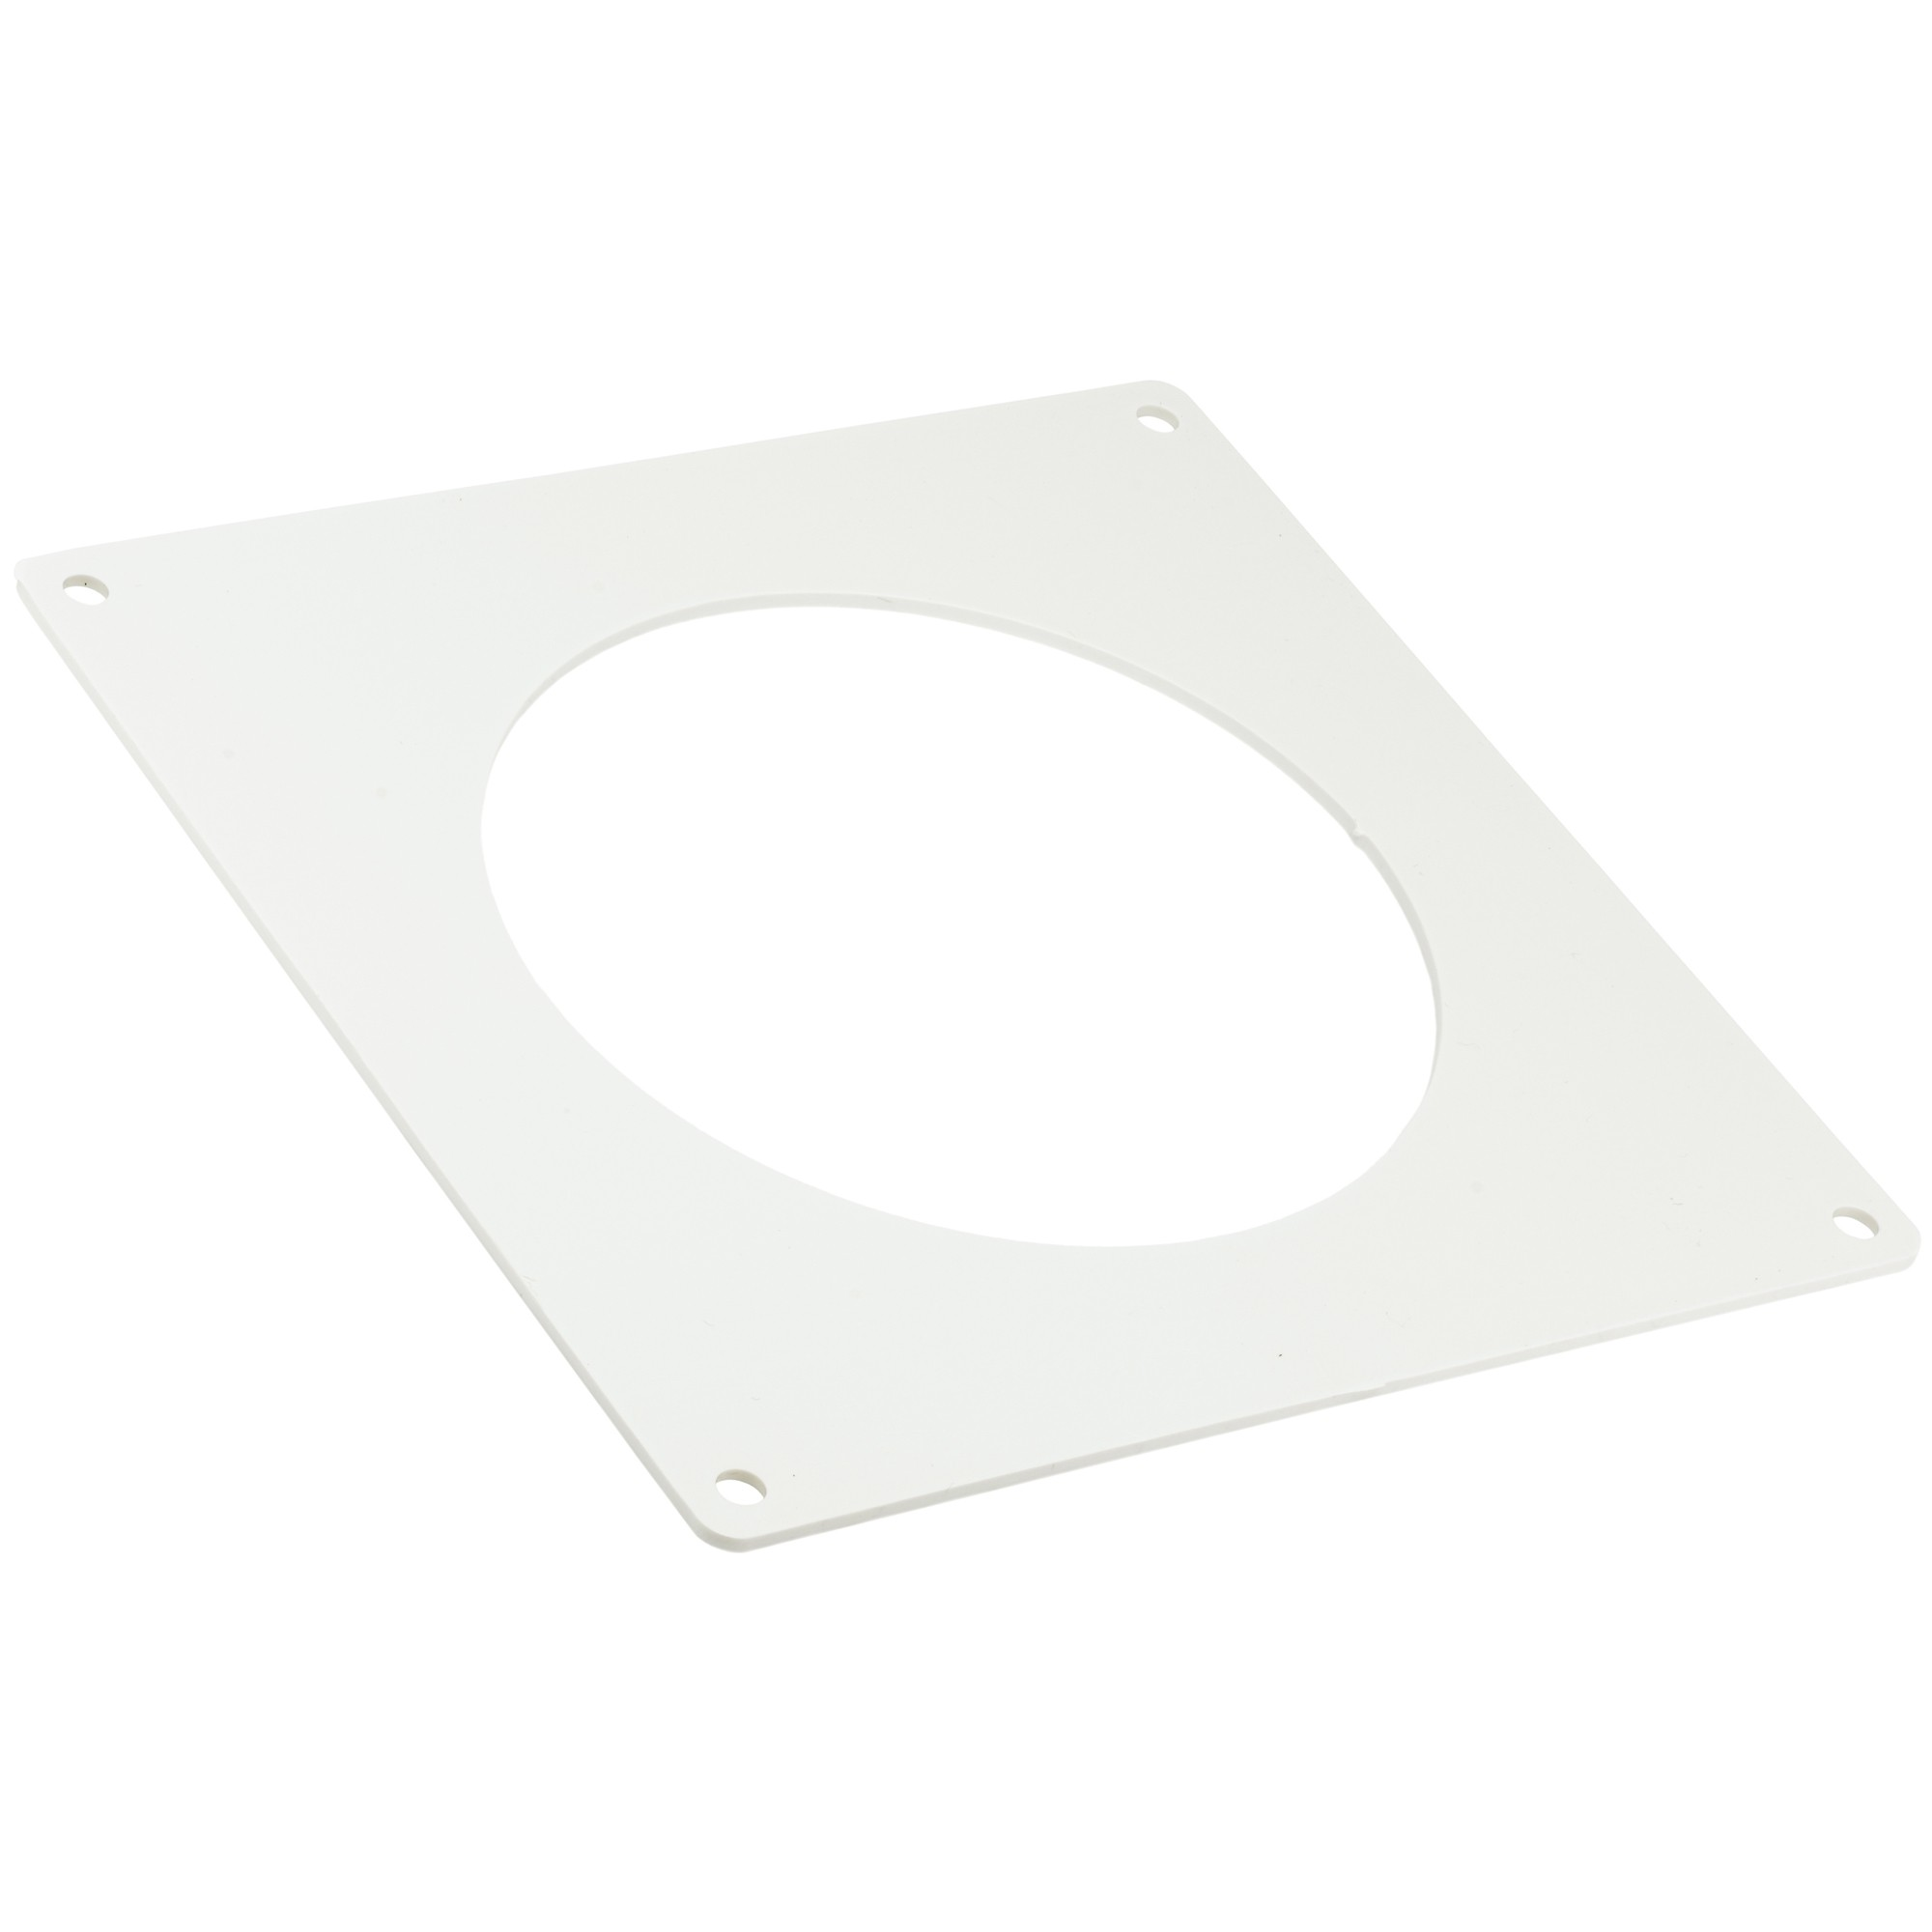 Manrose Round Ducting Pipe Wall Plate - White, 100mm